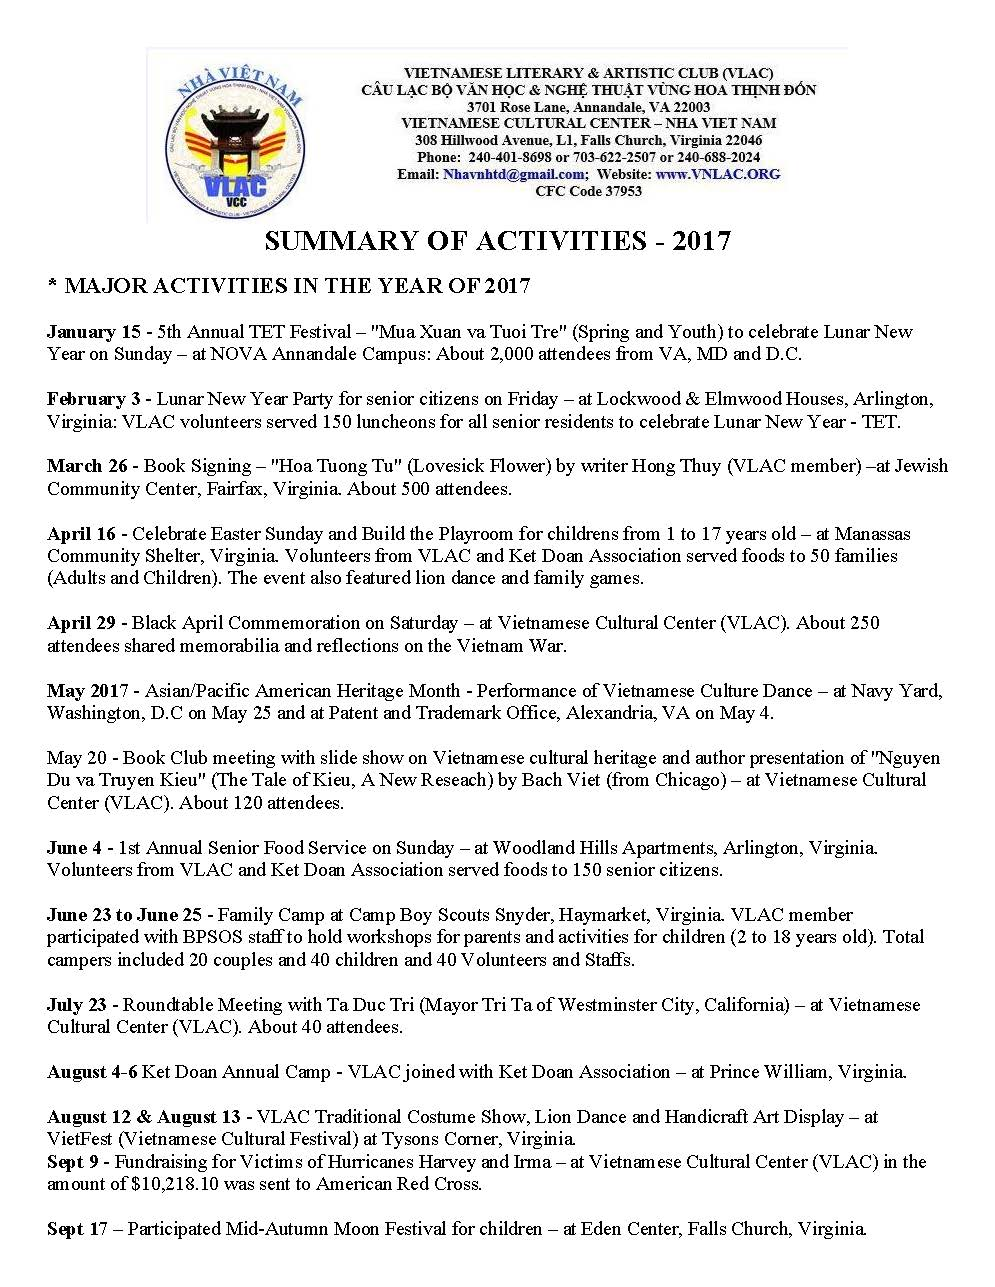 Nha Viet Nam Summary of Activities 2017_Page_1